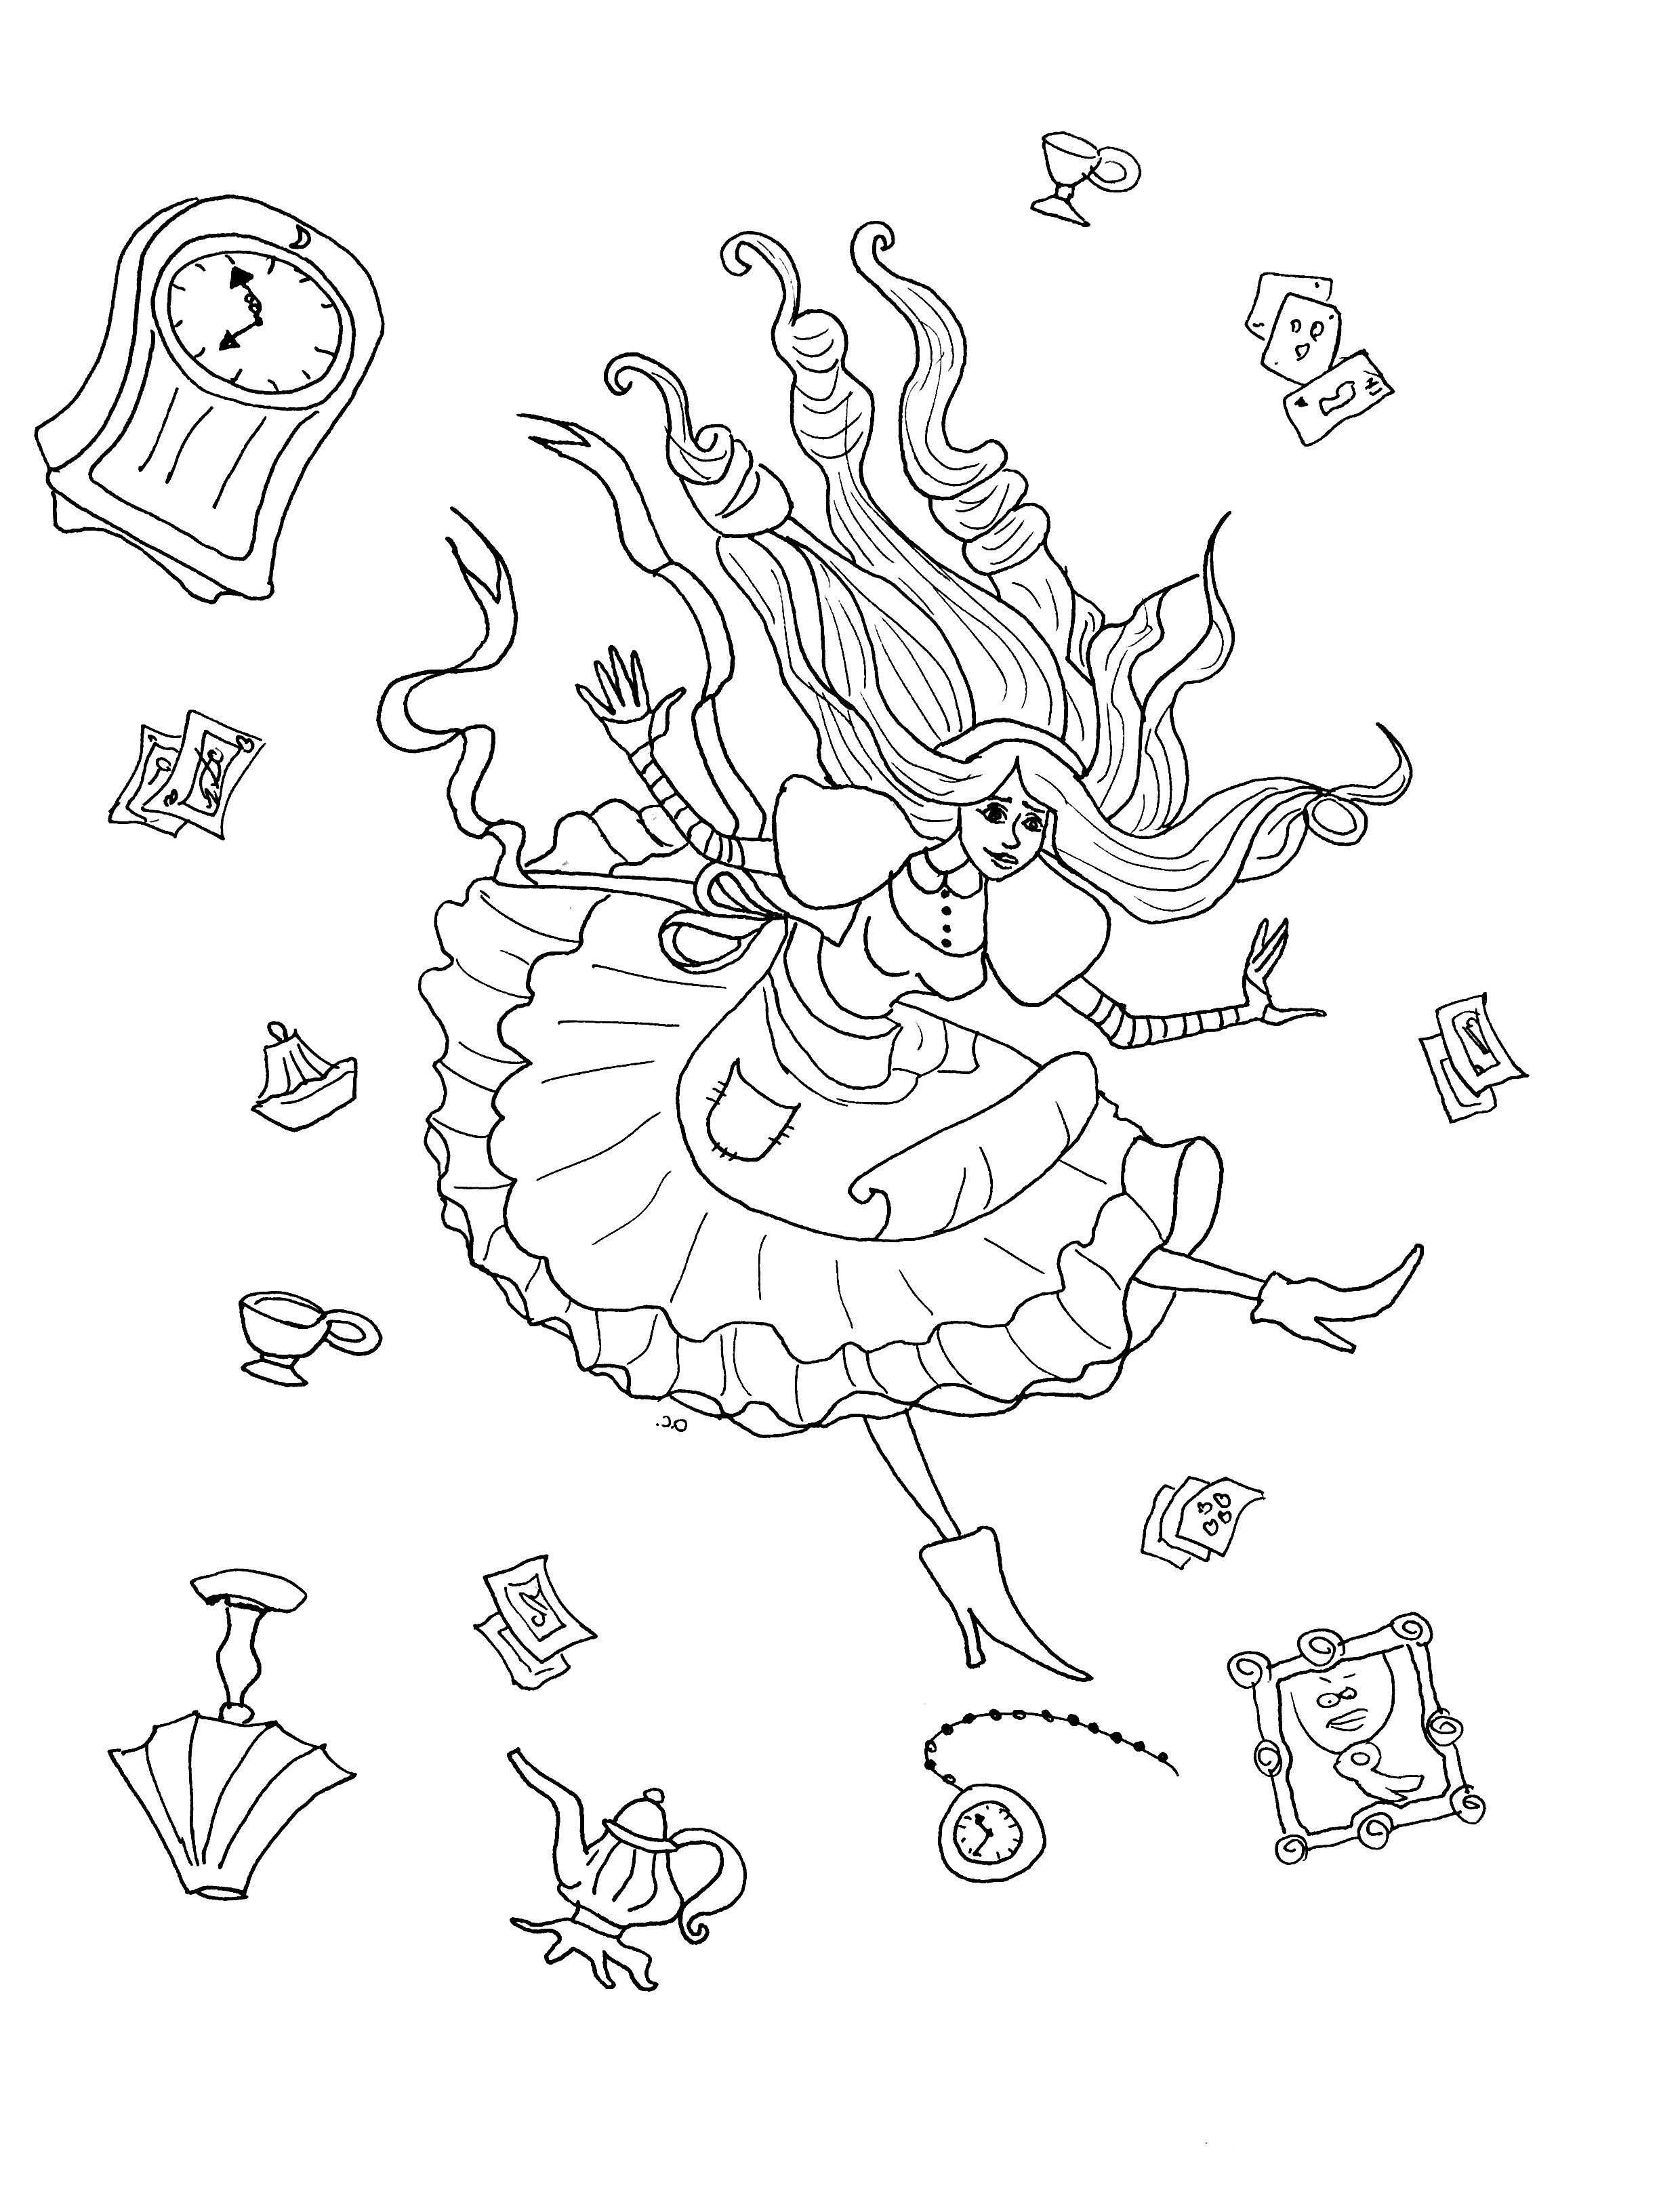 To Color For Kids Adult Kids Coloring Pages